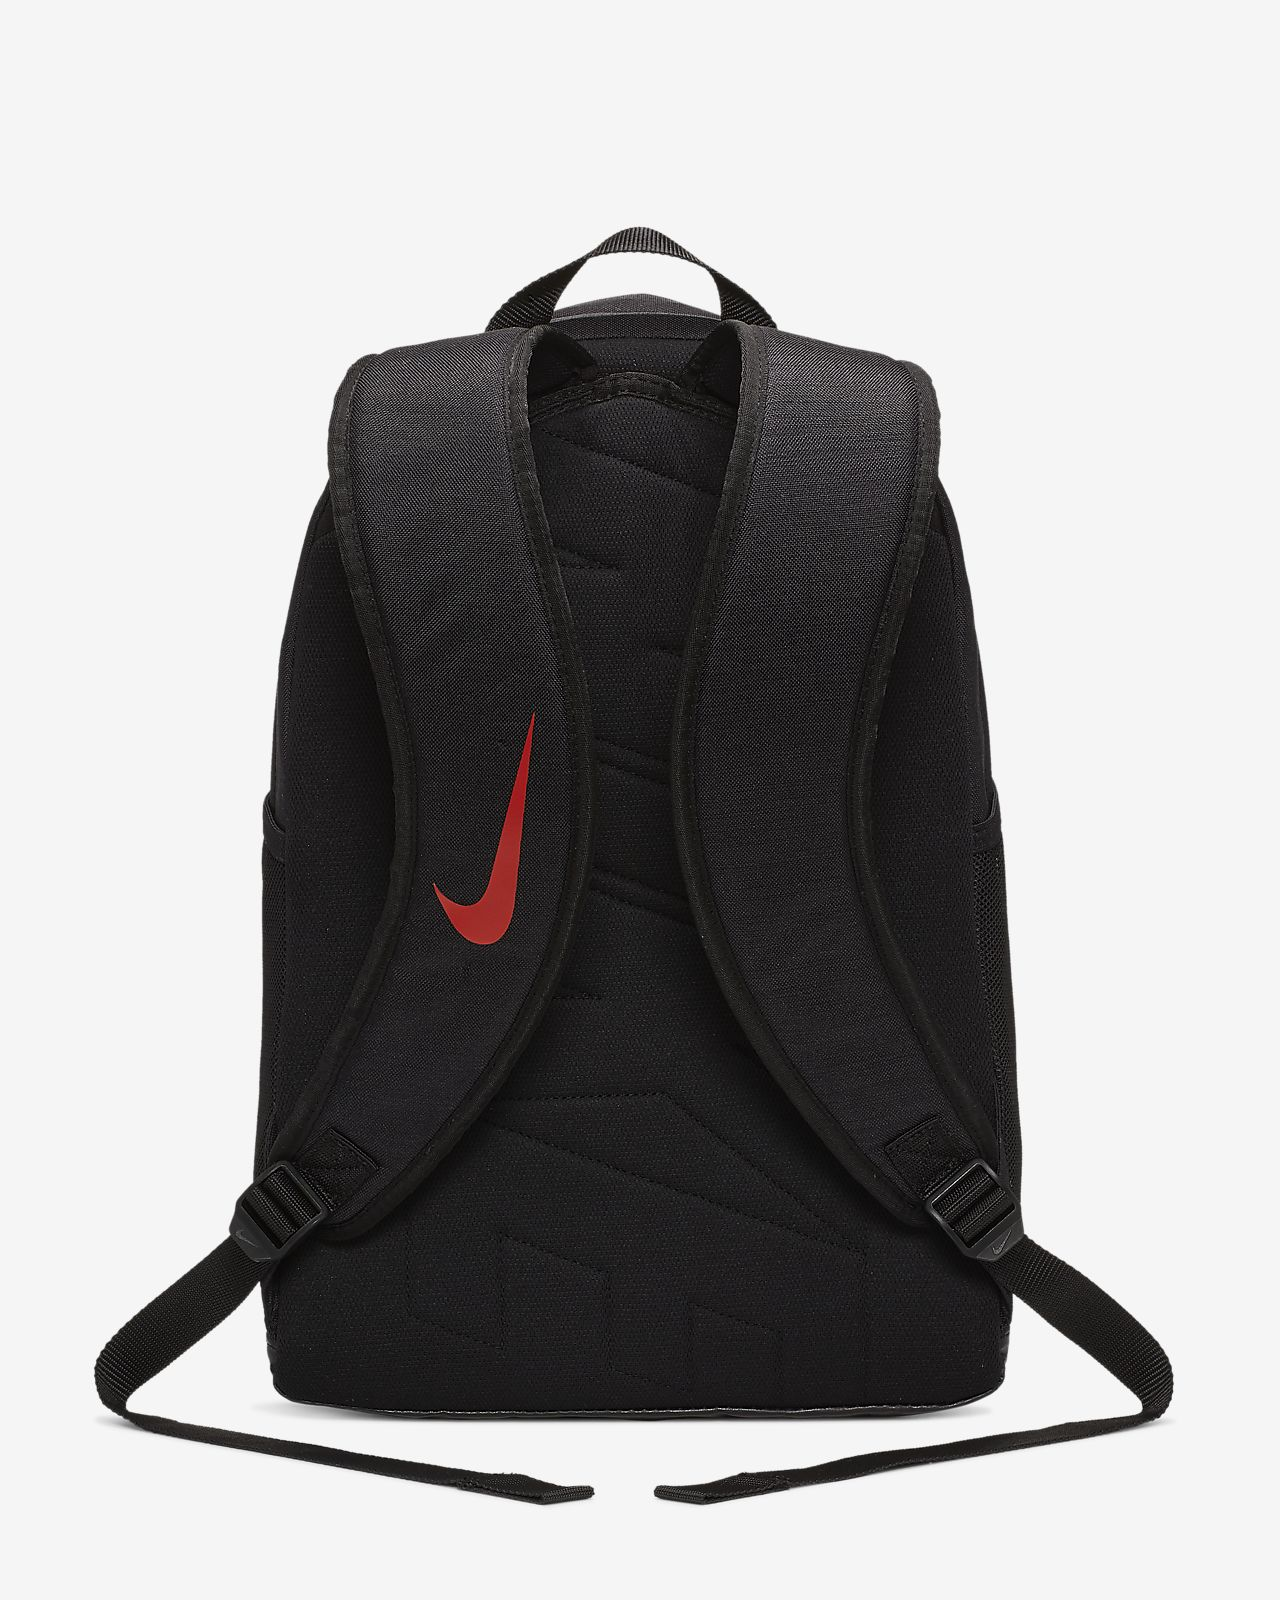 52533a3460b Nike Brasilia (Medium) Training Backpack. Nike.com